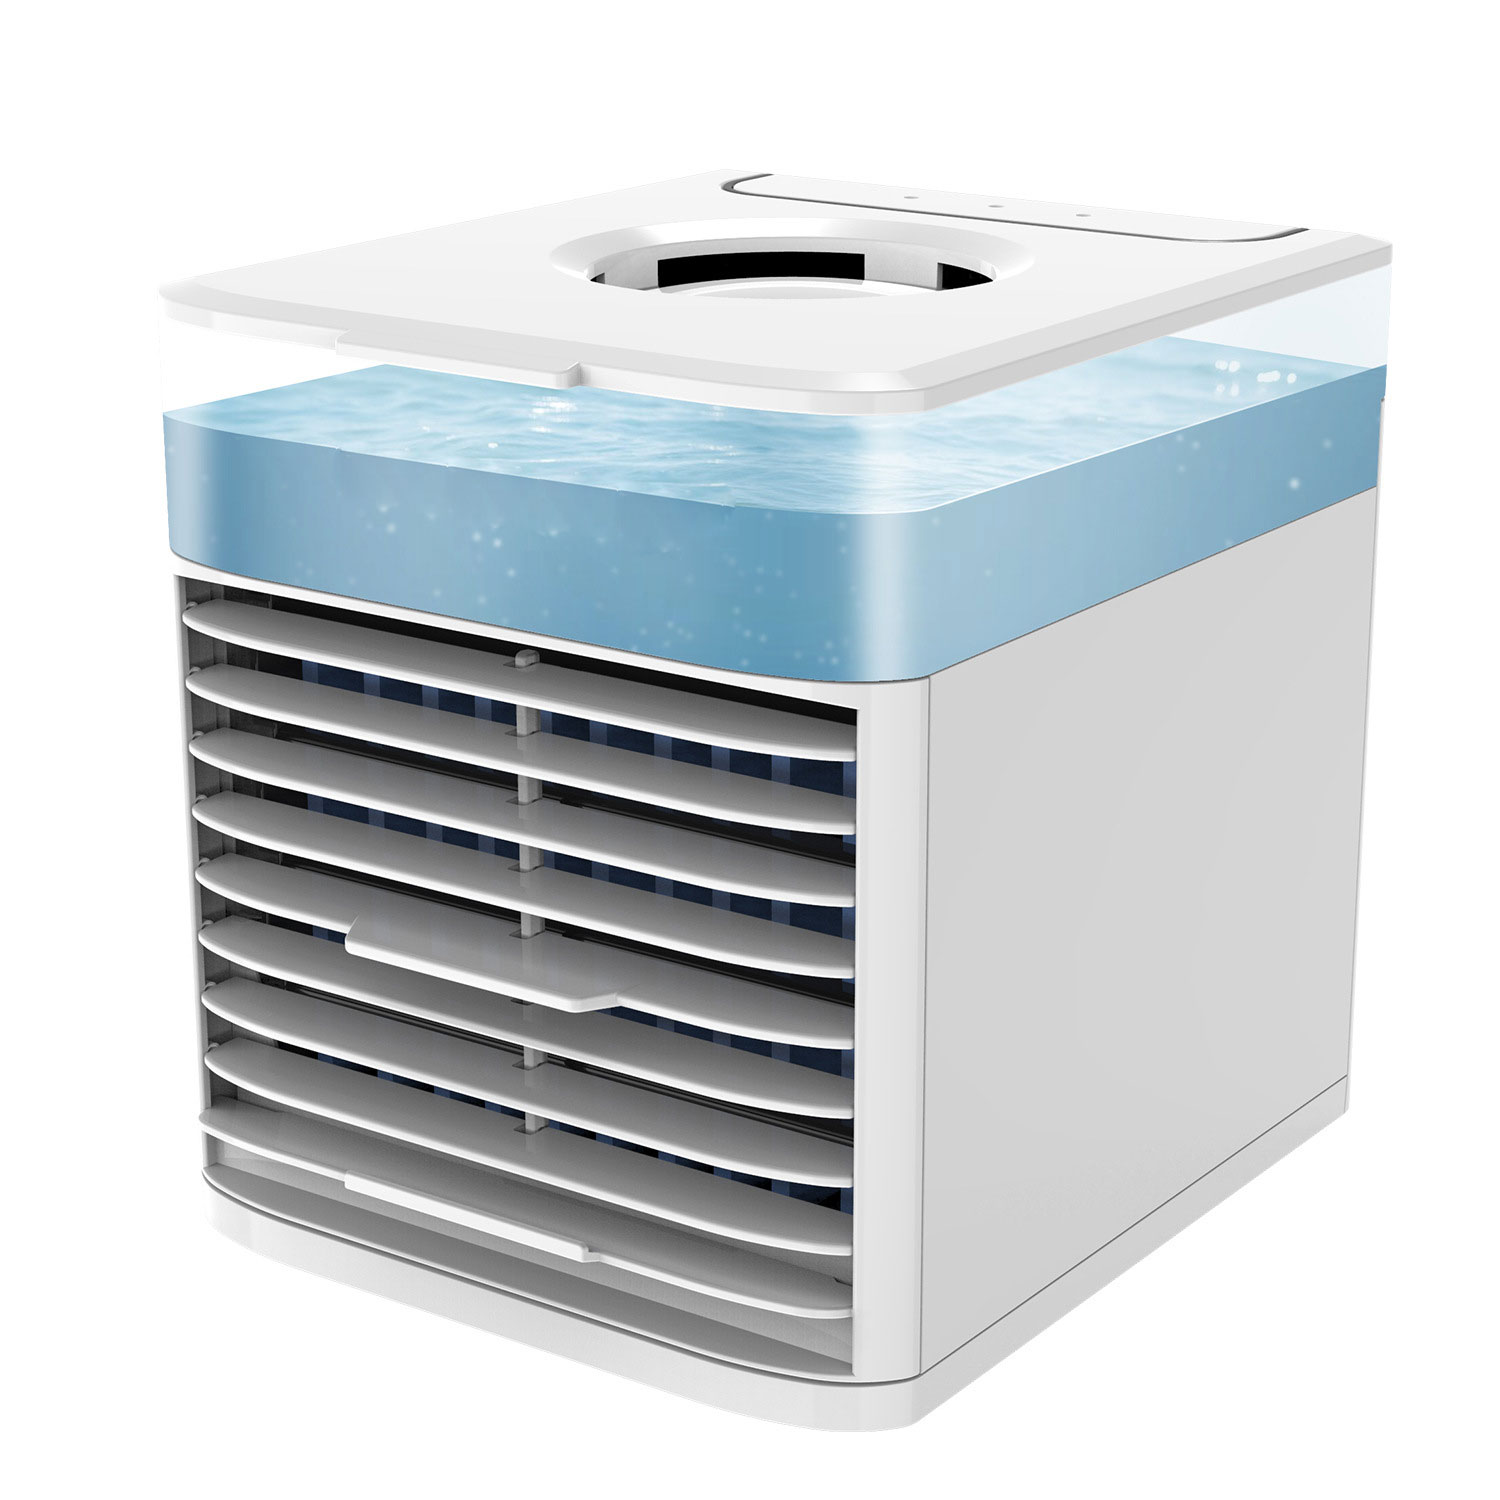 Portable Air Conditioner With UV Germicidal Lamp USB Air Cooler Fan Multi Function Humidifier Purifier Mini Air Conditioning